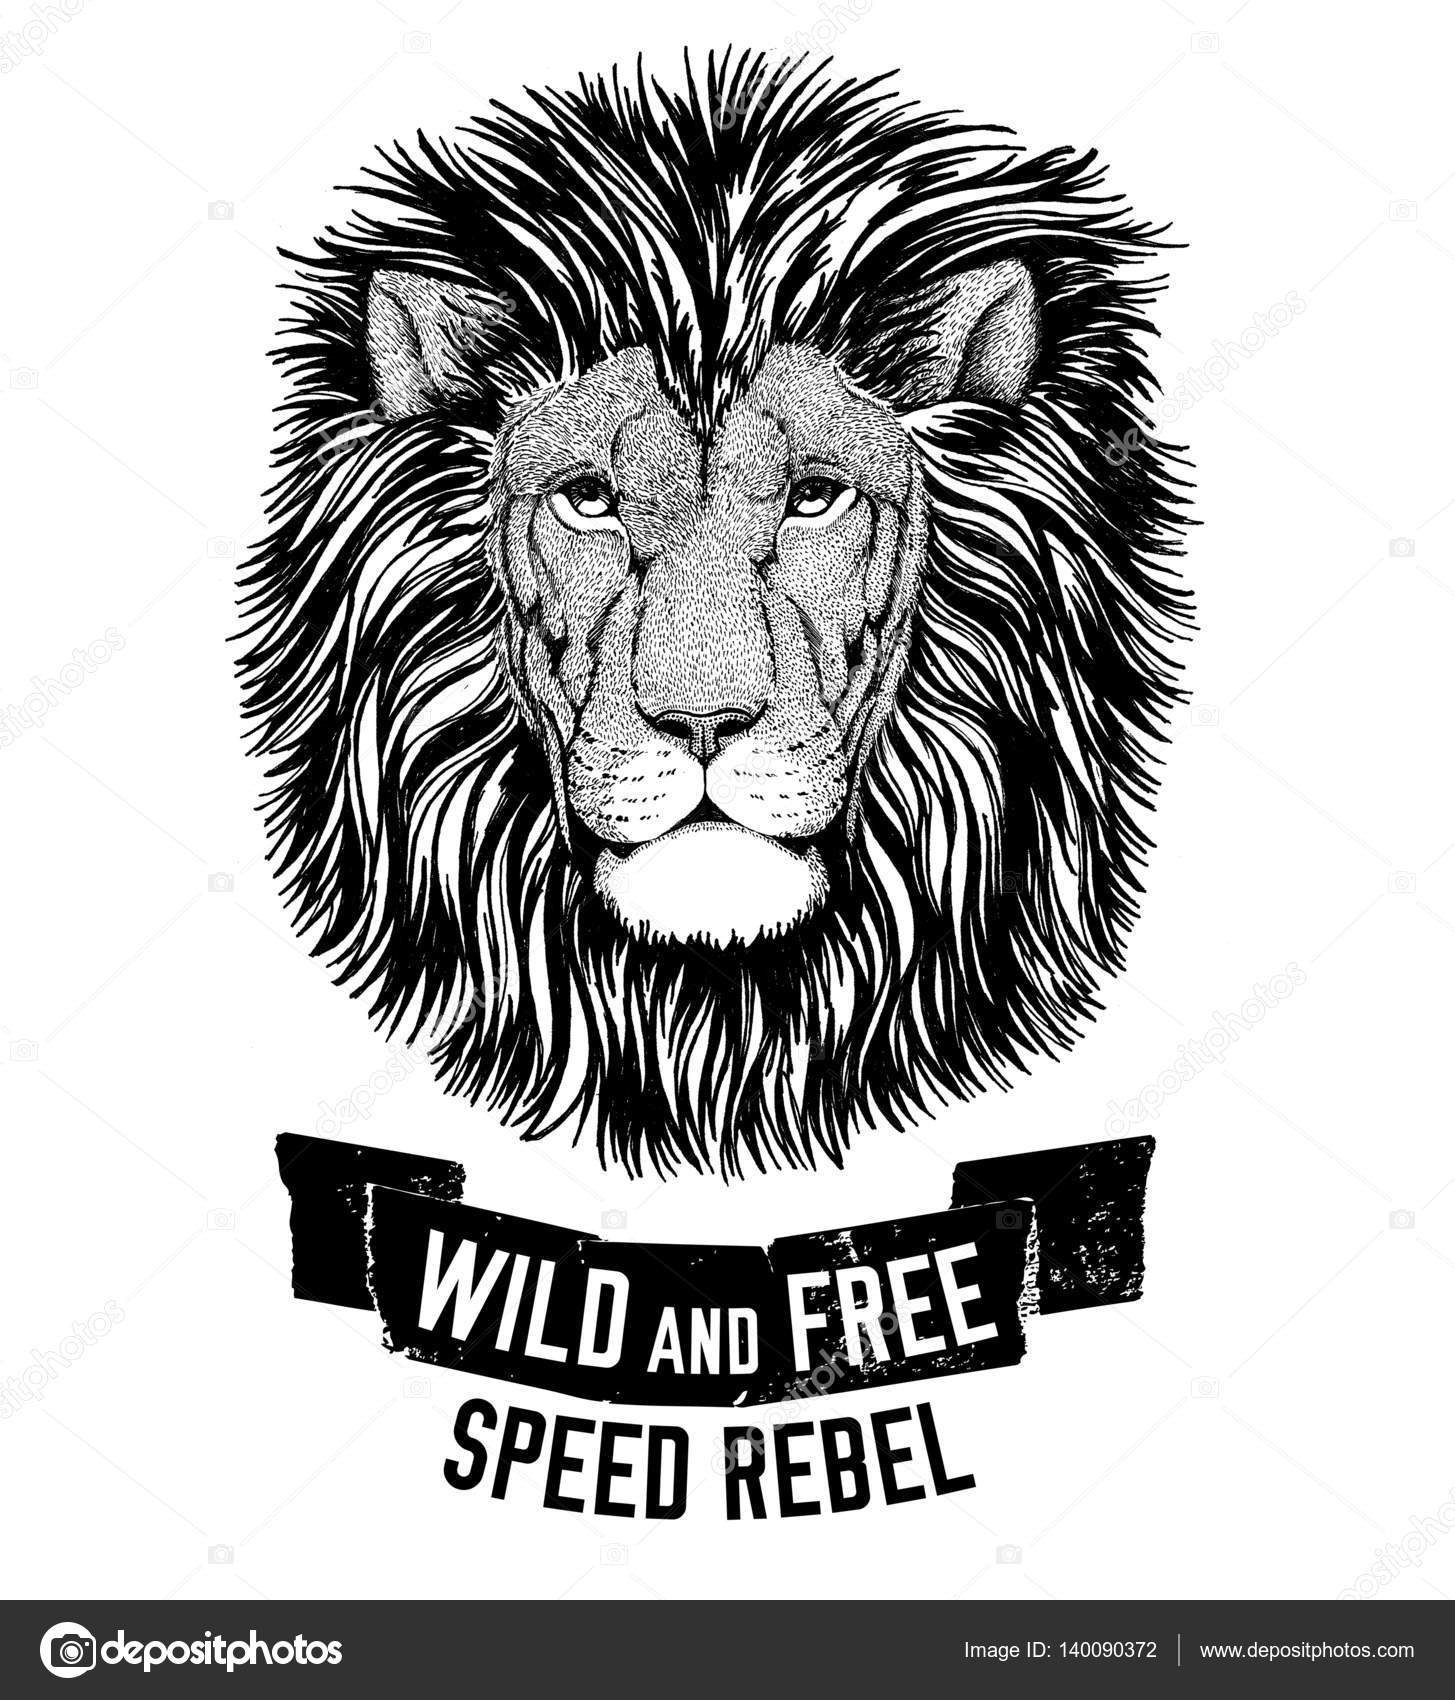 Free t-shirt design